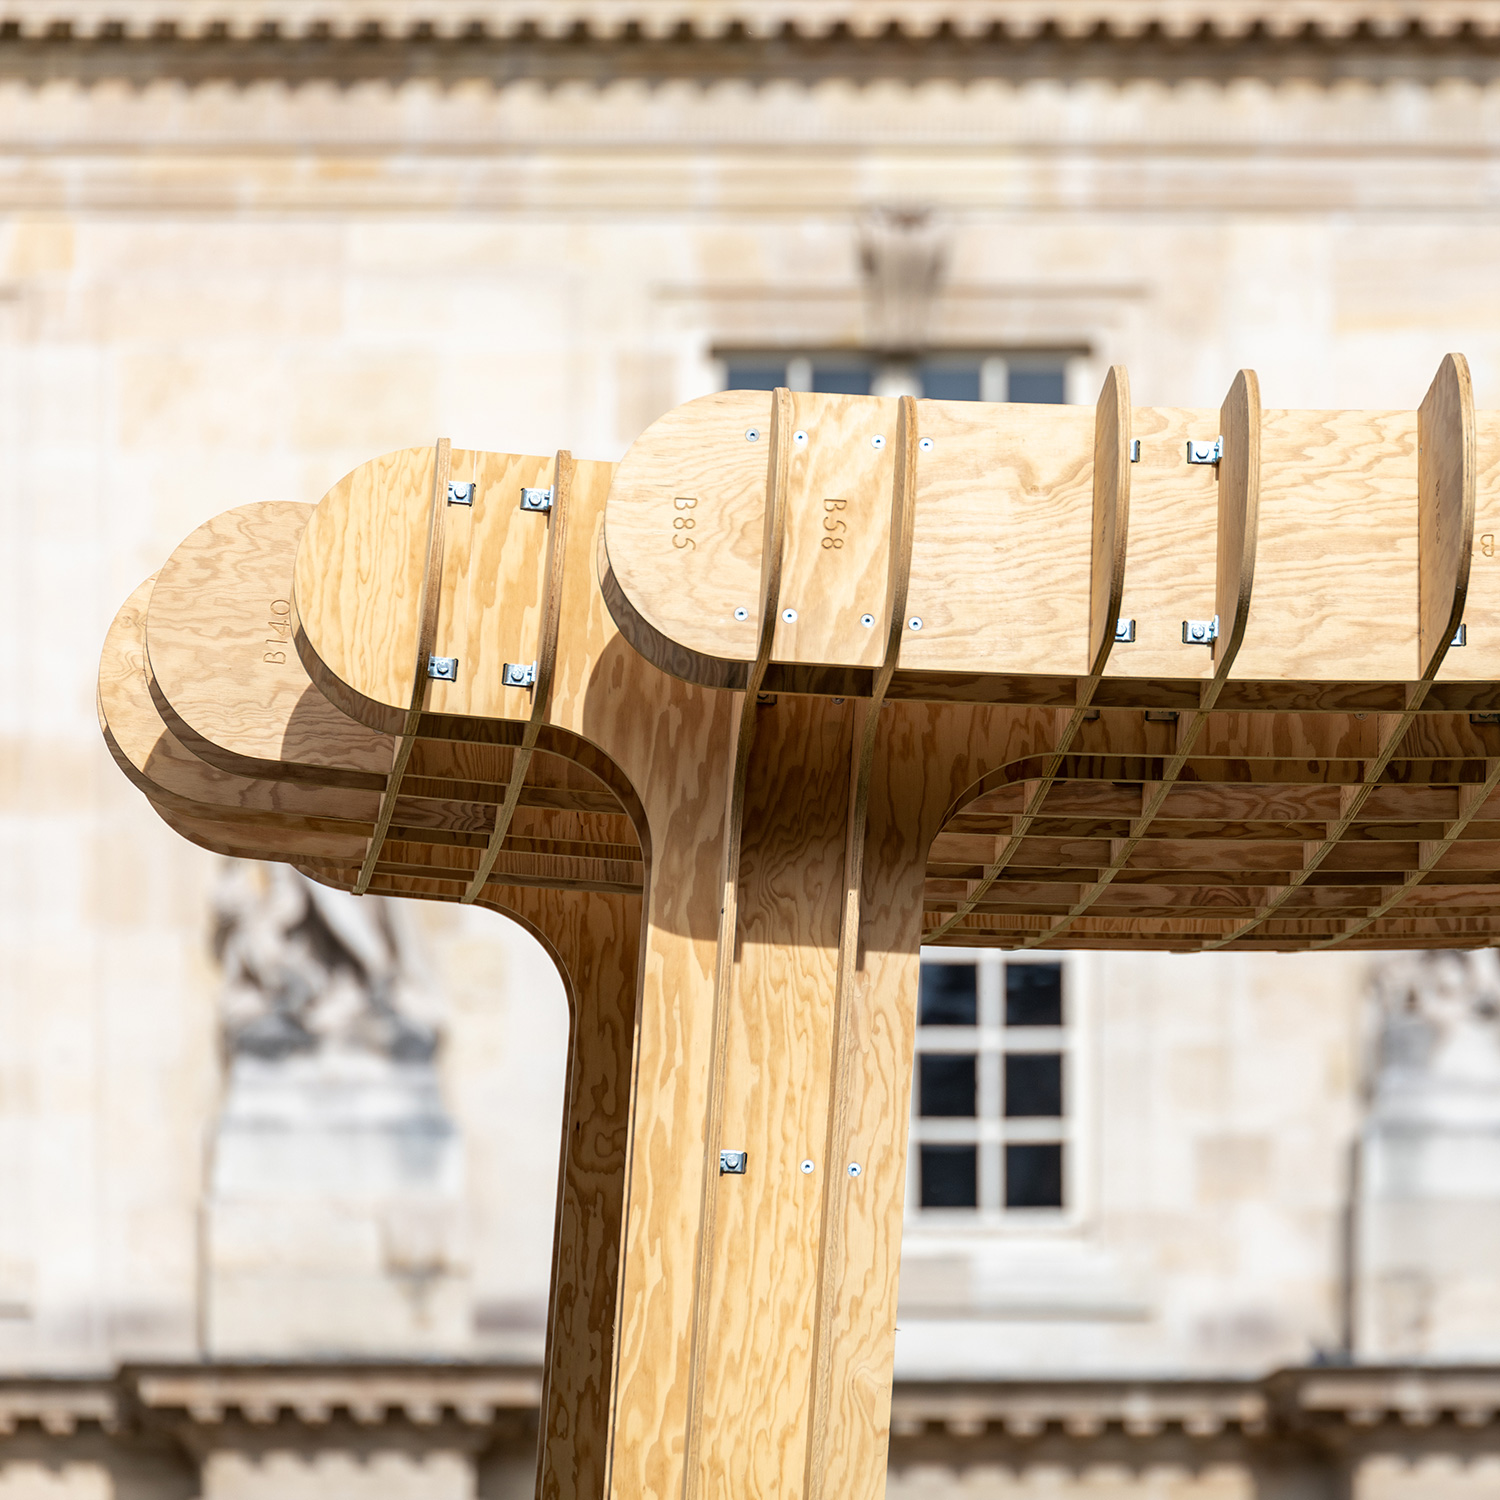 ublik-i-am-a-stool-pdw-2019-installation-bois-paris